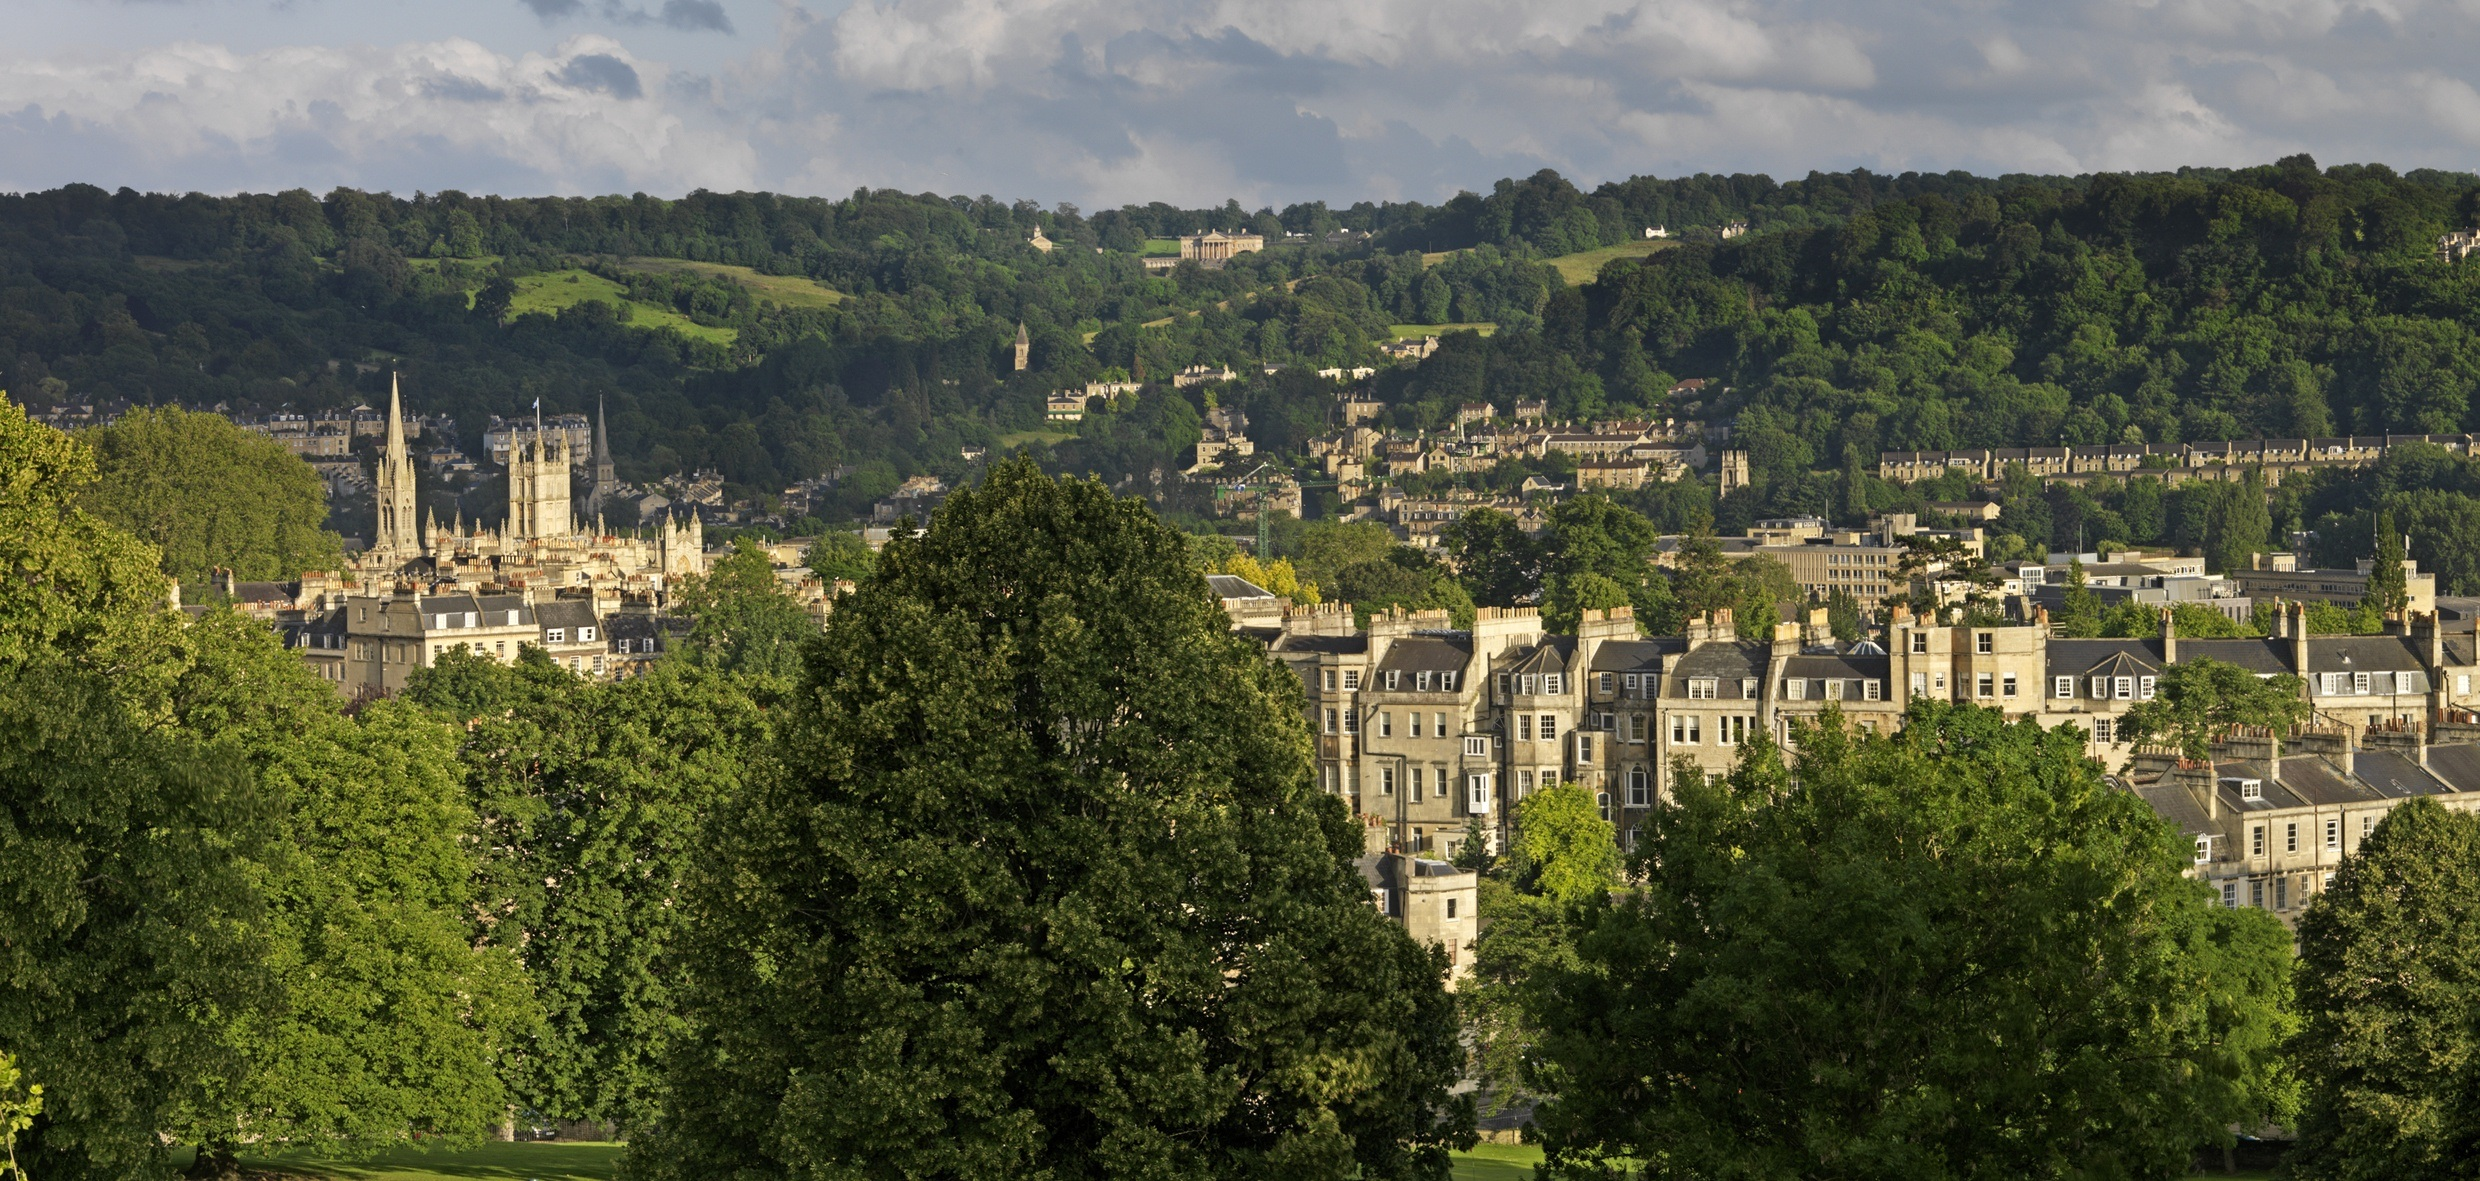 Bath Images green setting of the city | city of bath world heritage site